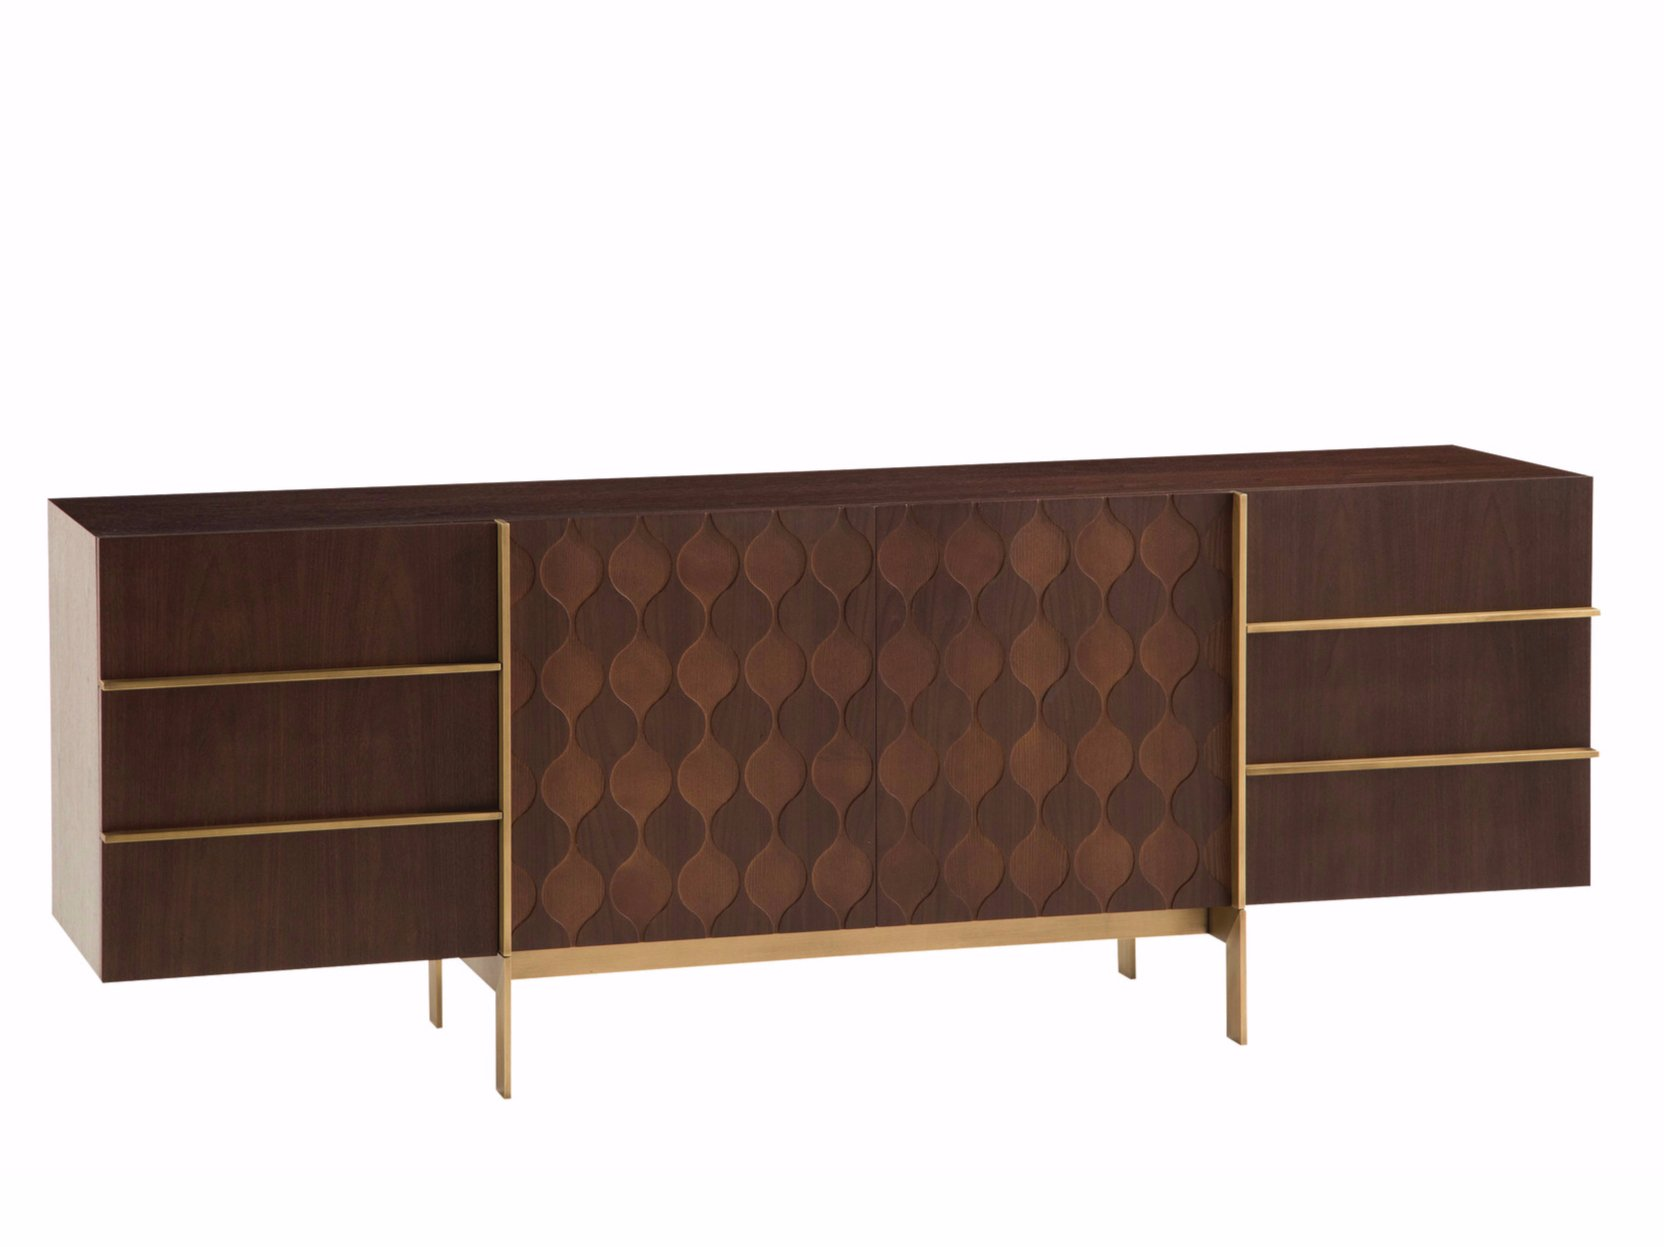 trocadero sideboard with doors trocadero collection by roche bobois design pierre dubois. Black Bedroom Furniture Sets. Home Design Ideas